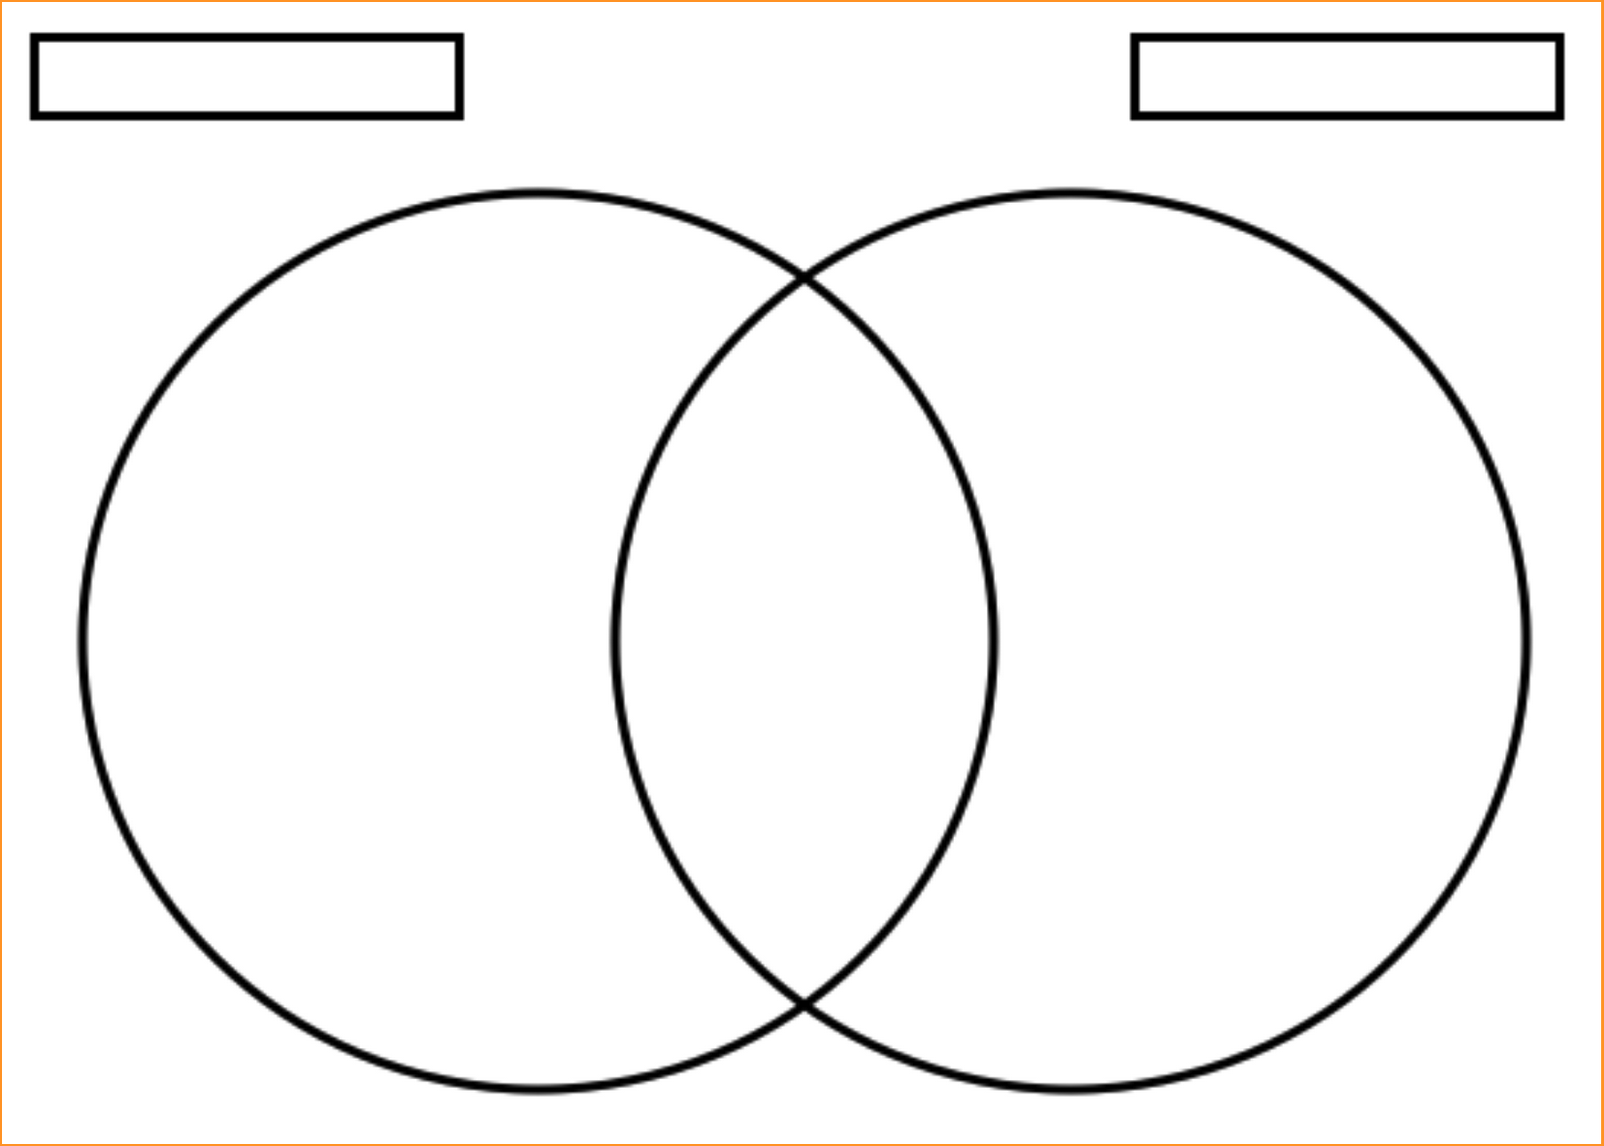 Venn Diagram Template 40 Free Venn Diagram Templates